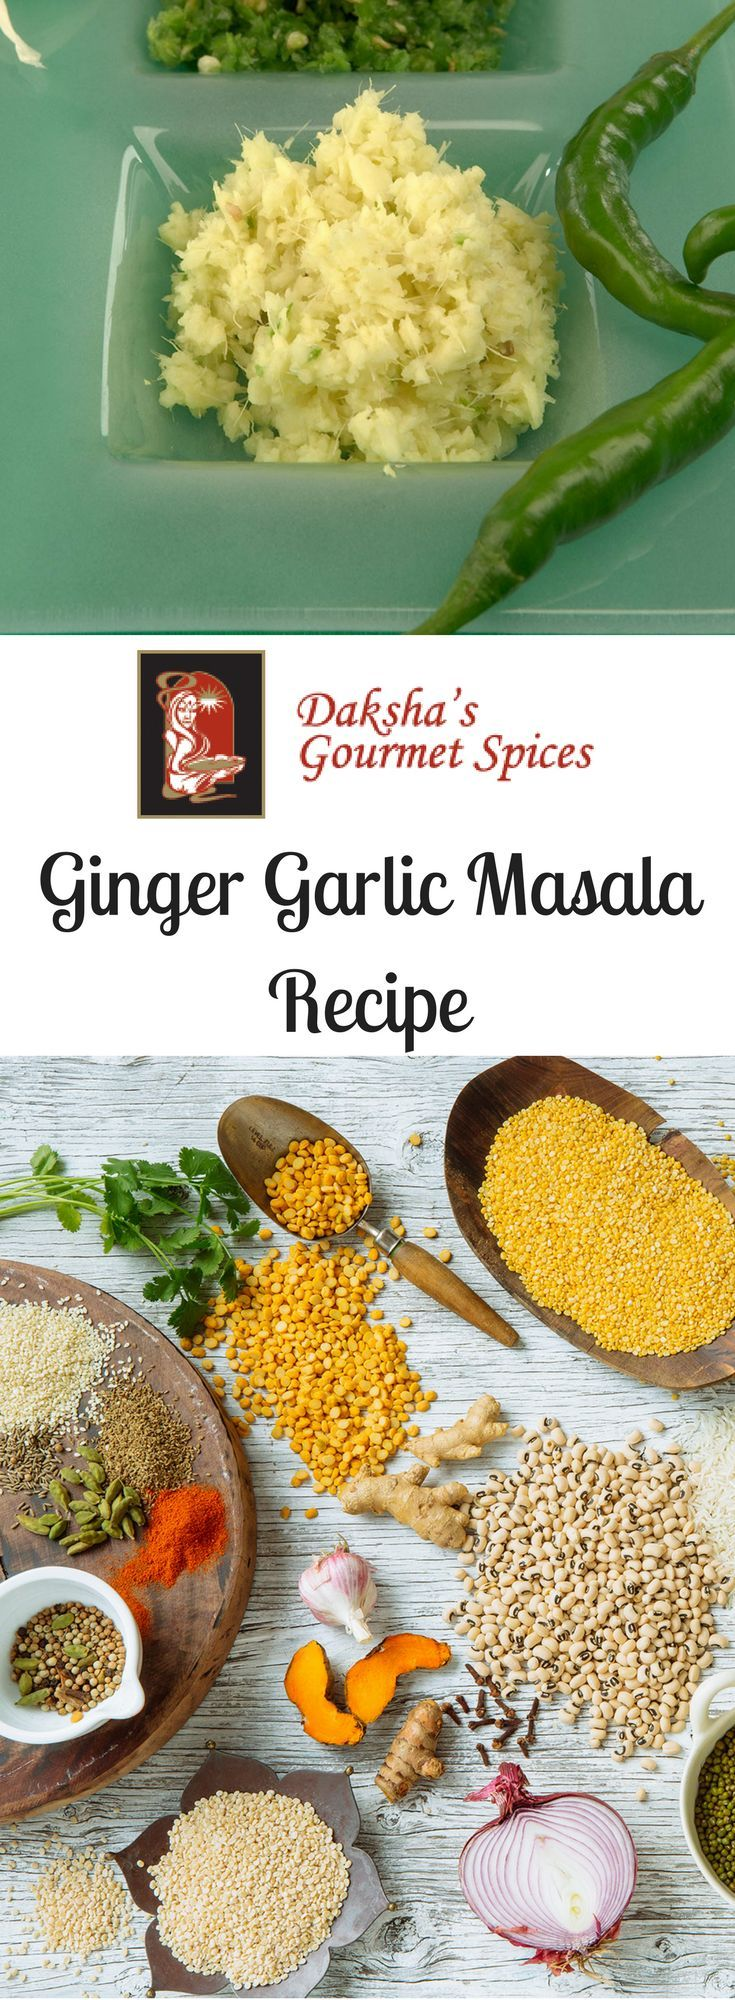 Daksha's Ginger Garlic Masala Recipe! Deliciously fresh with garlic cloves, ginger, green chilies and coarse salt. Visit to link to see the recipe!